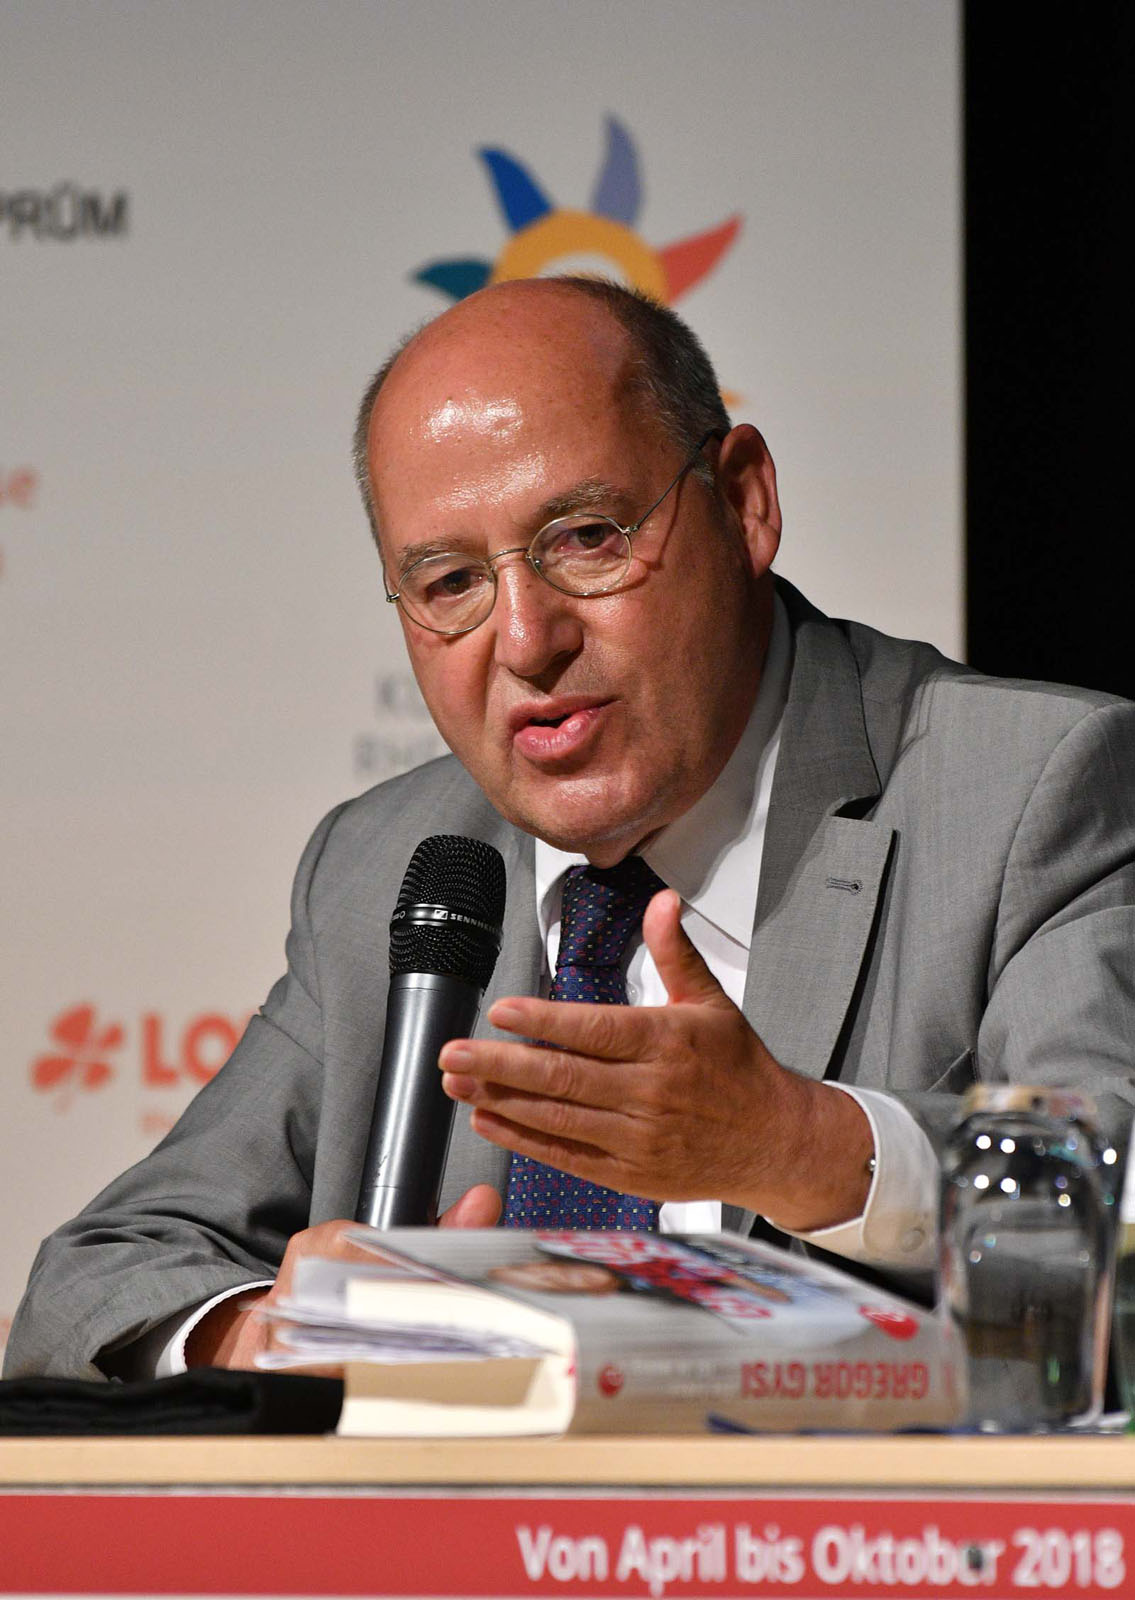 Gregor Gysi am 22. Juni 2018 in Bitburg